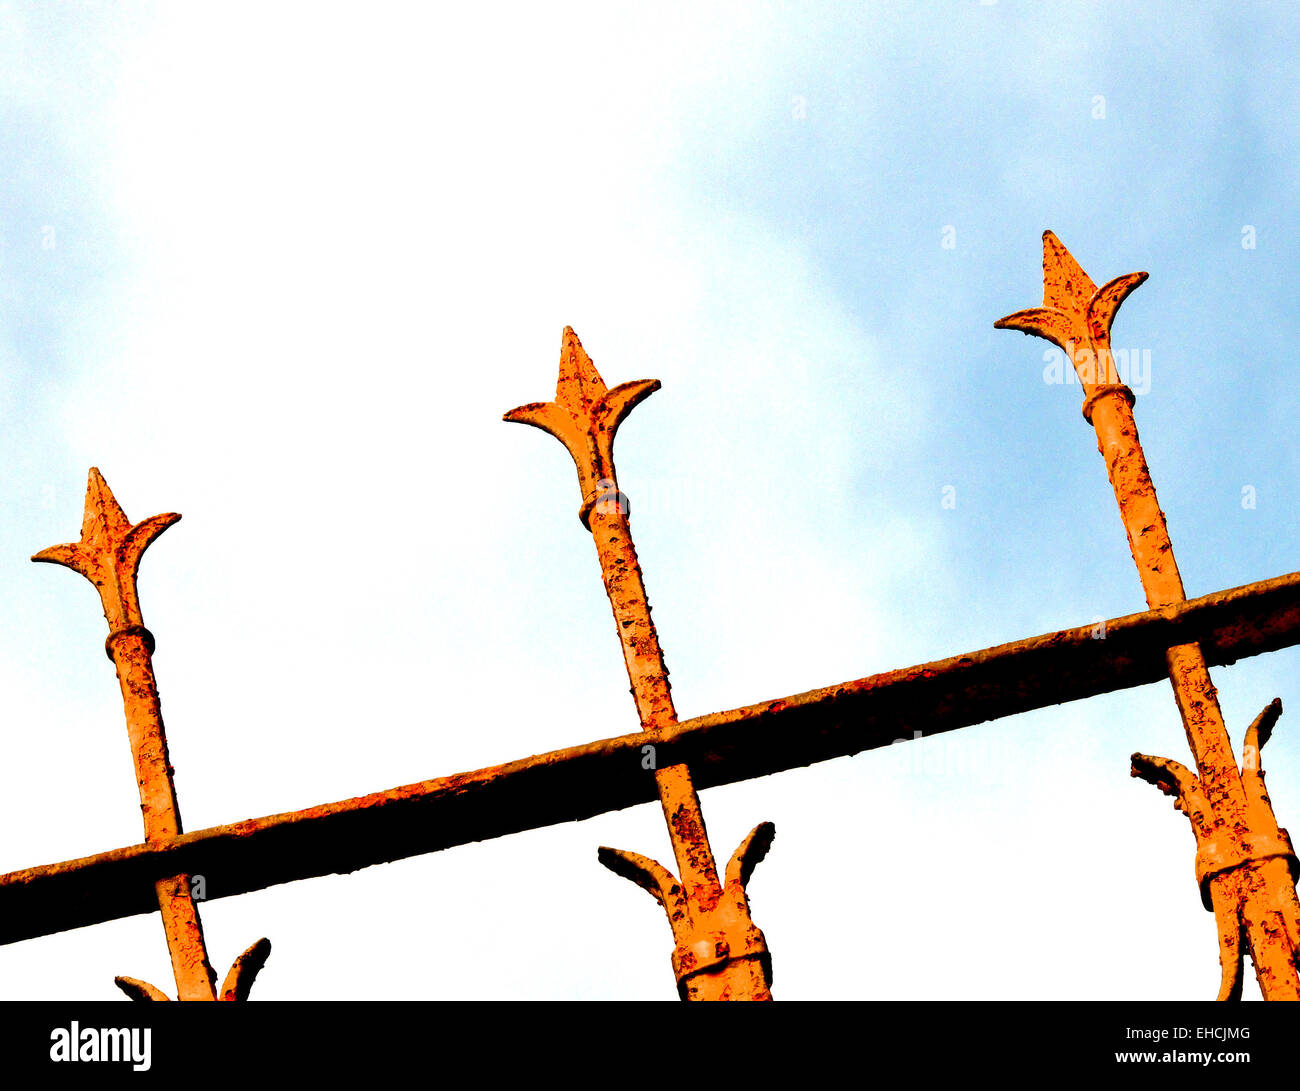 Fence diagonally - Stock Image